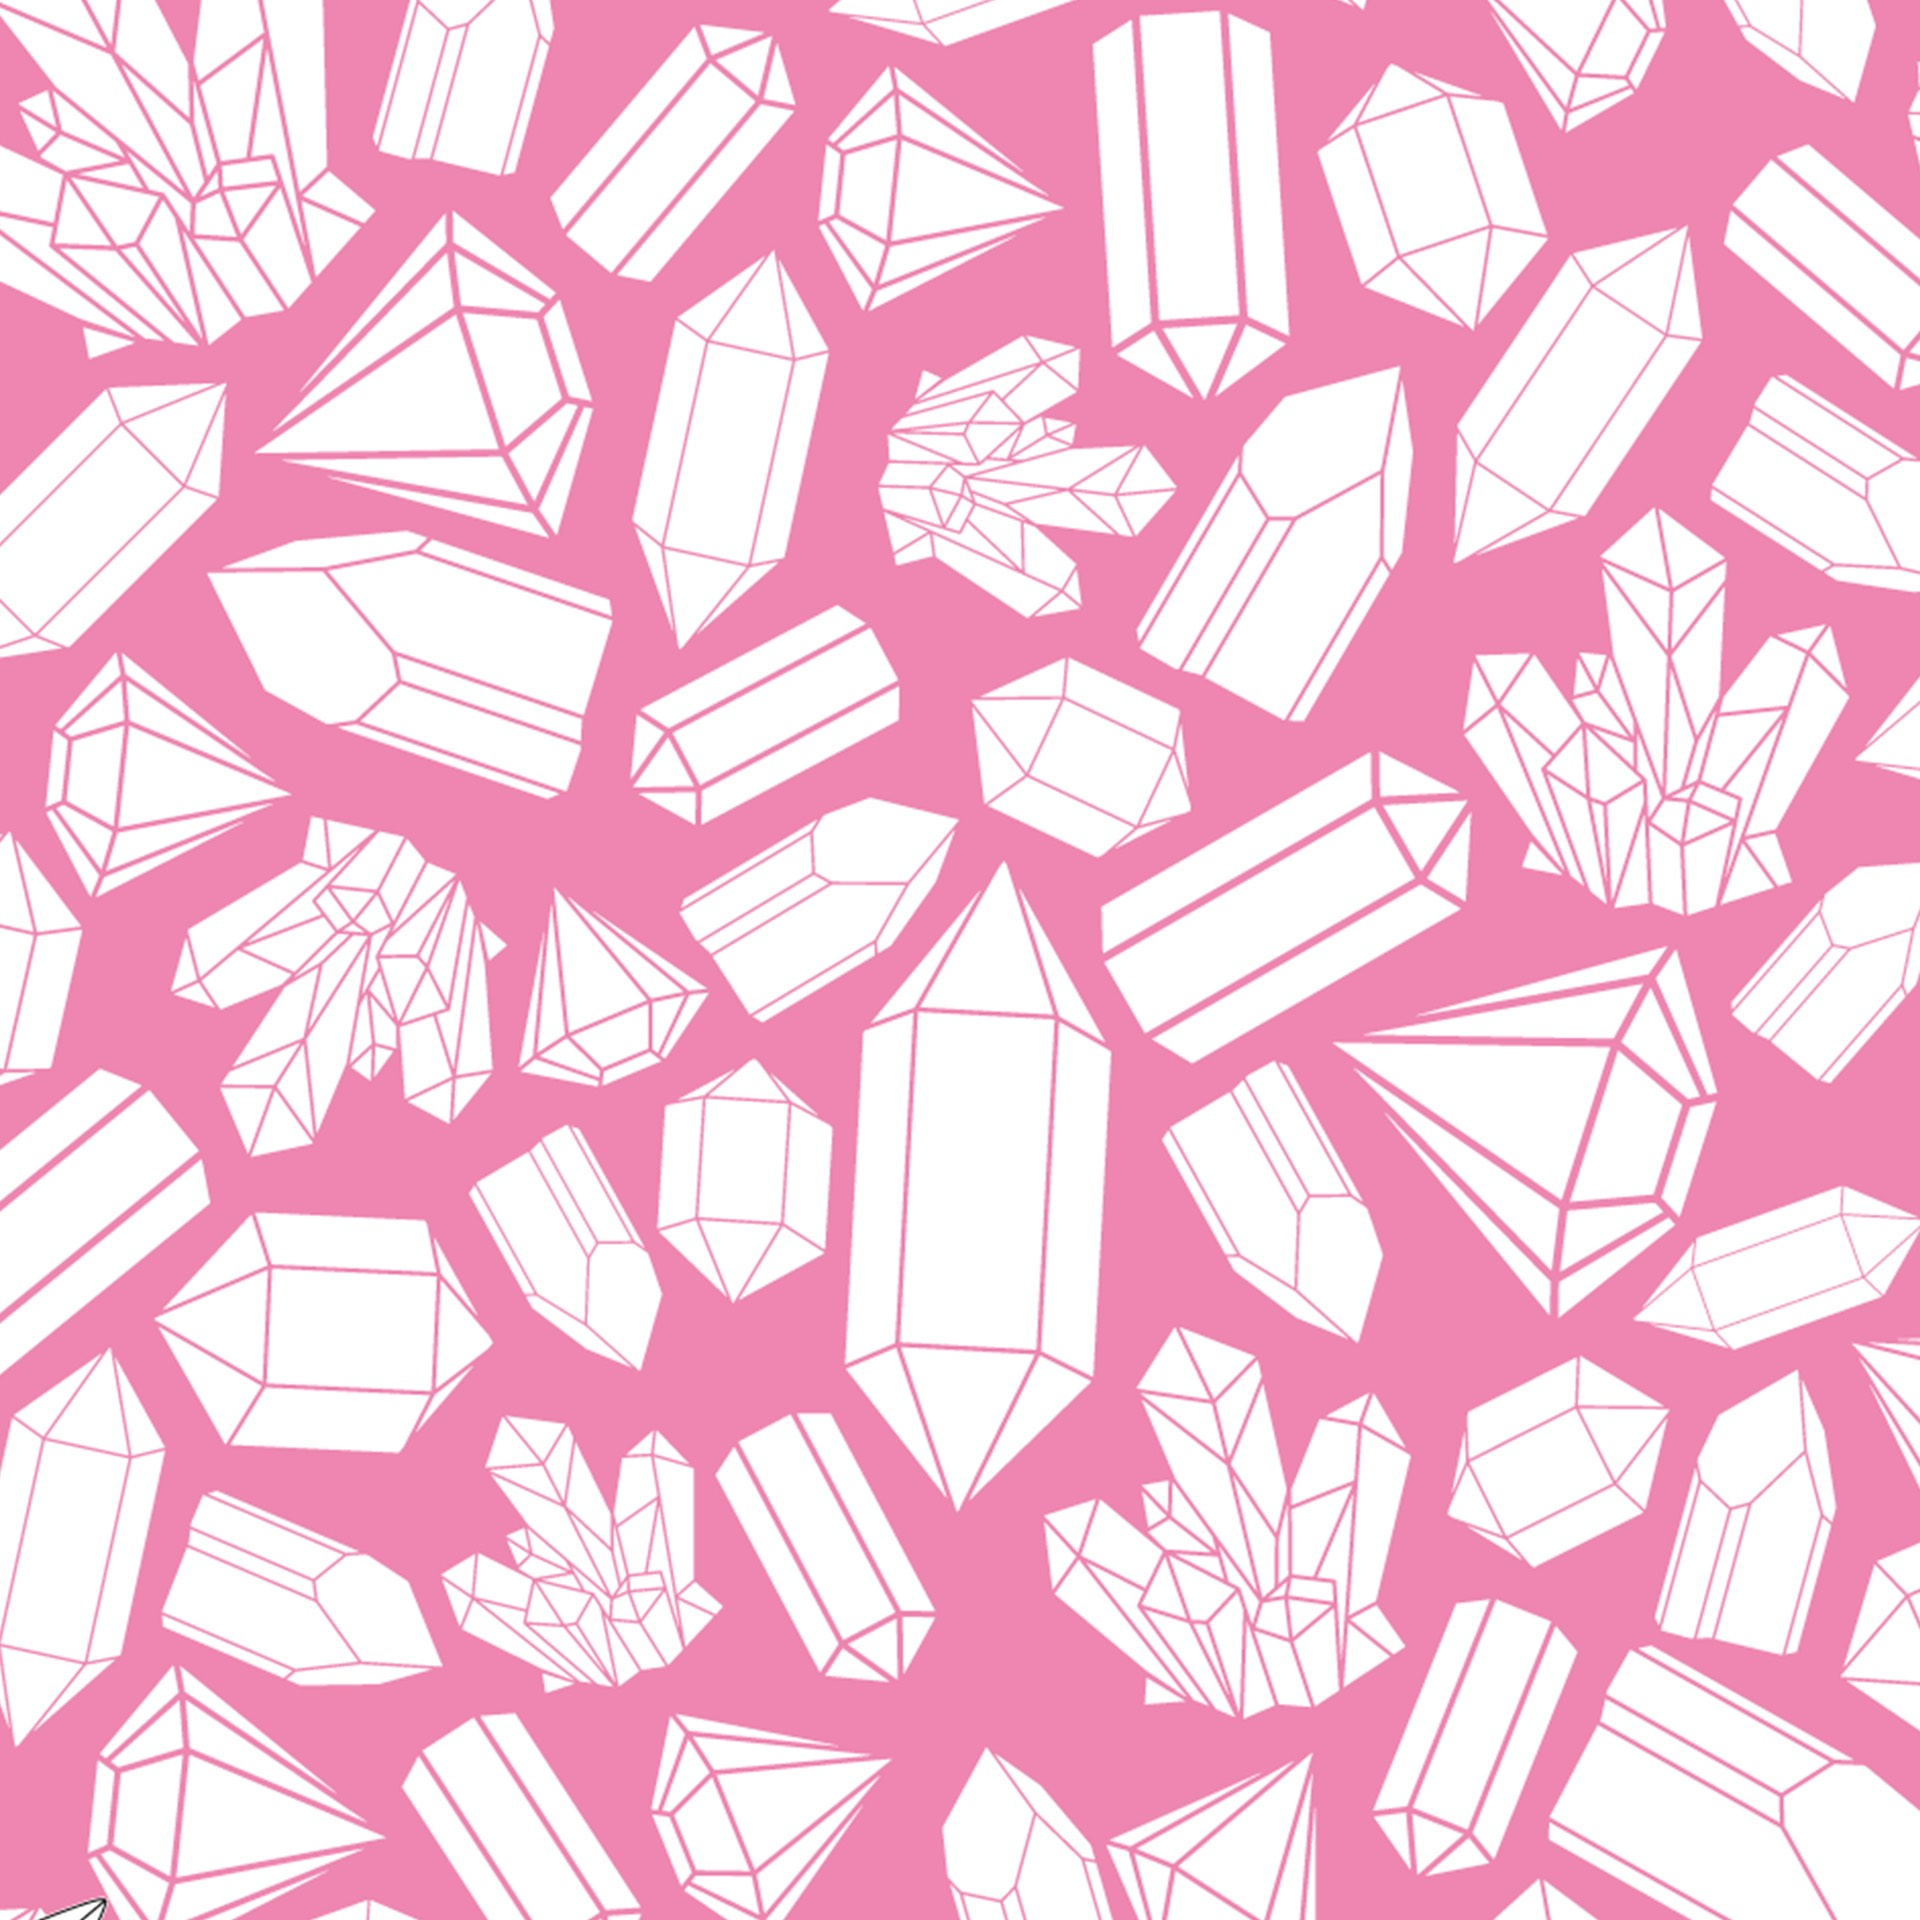 graphic regarding Printable Origami Paper titled Crystal Habit Printable Origami Paper